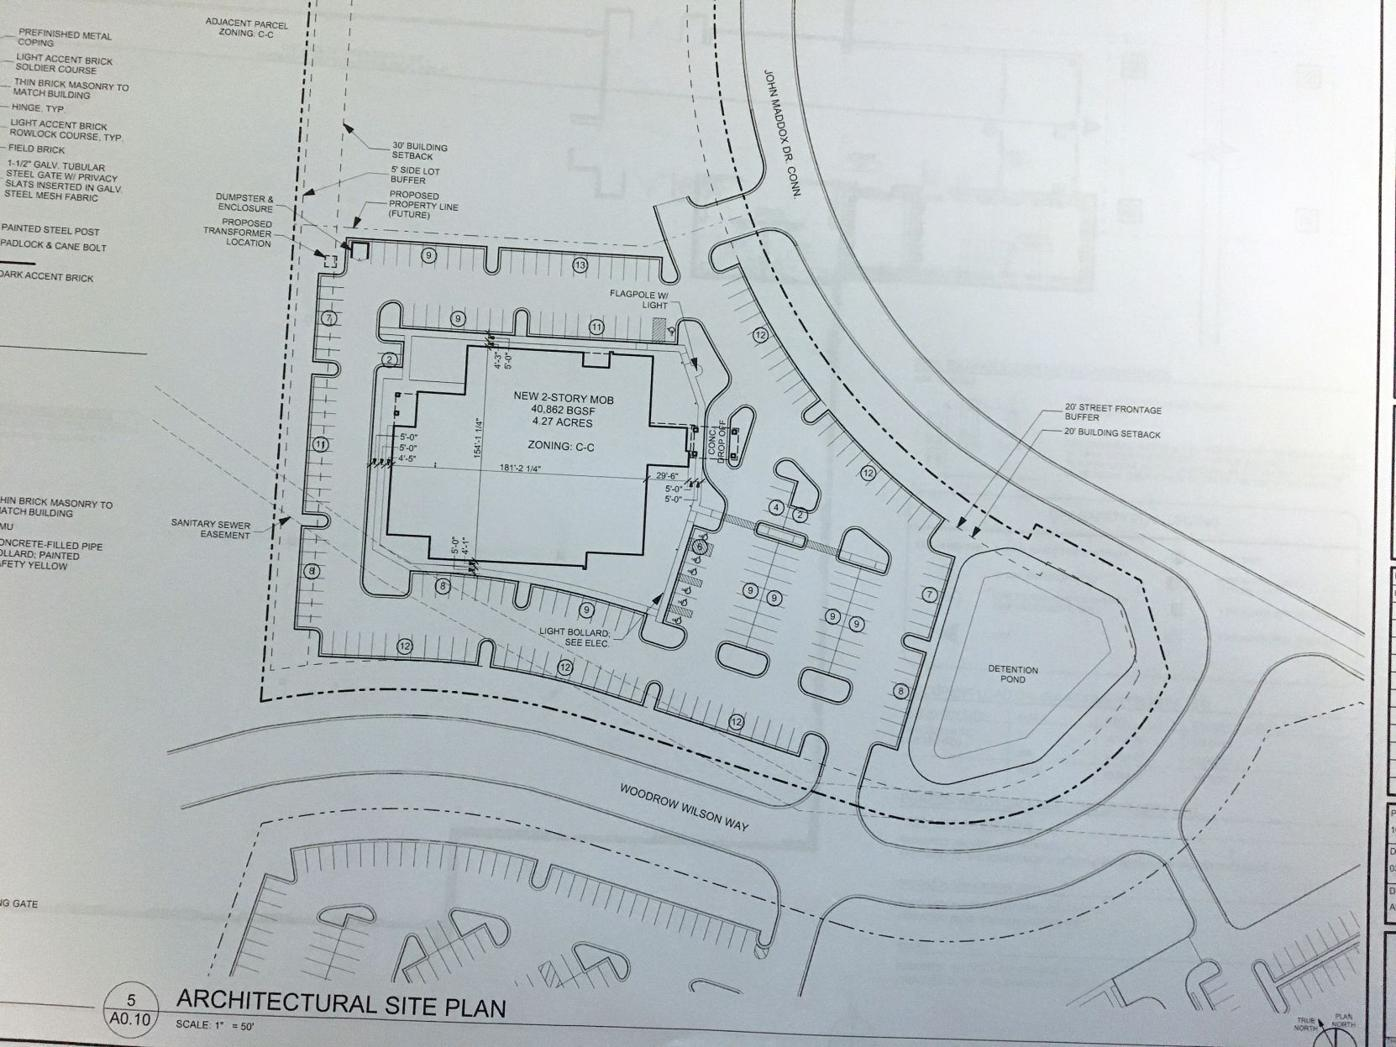 Site plan for new Harbin medical office building